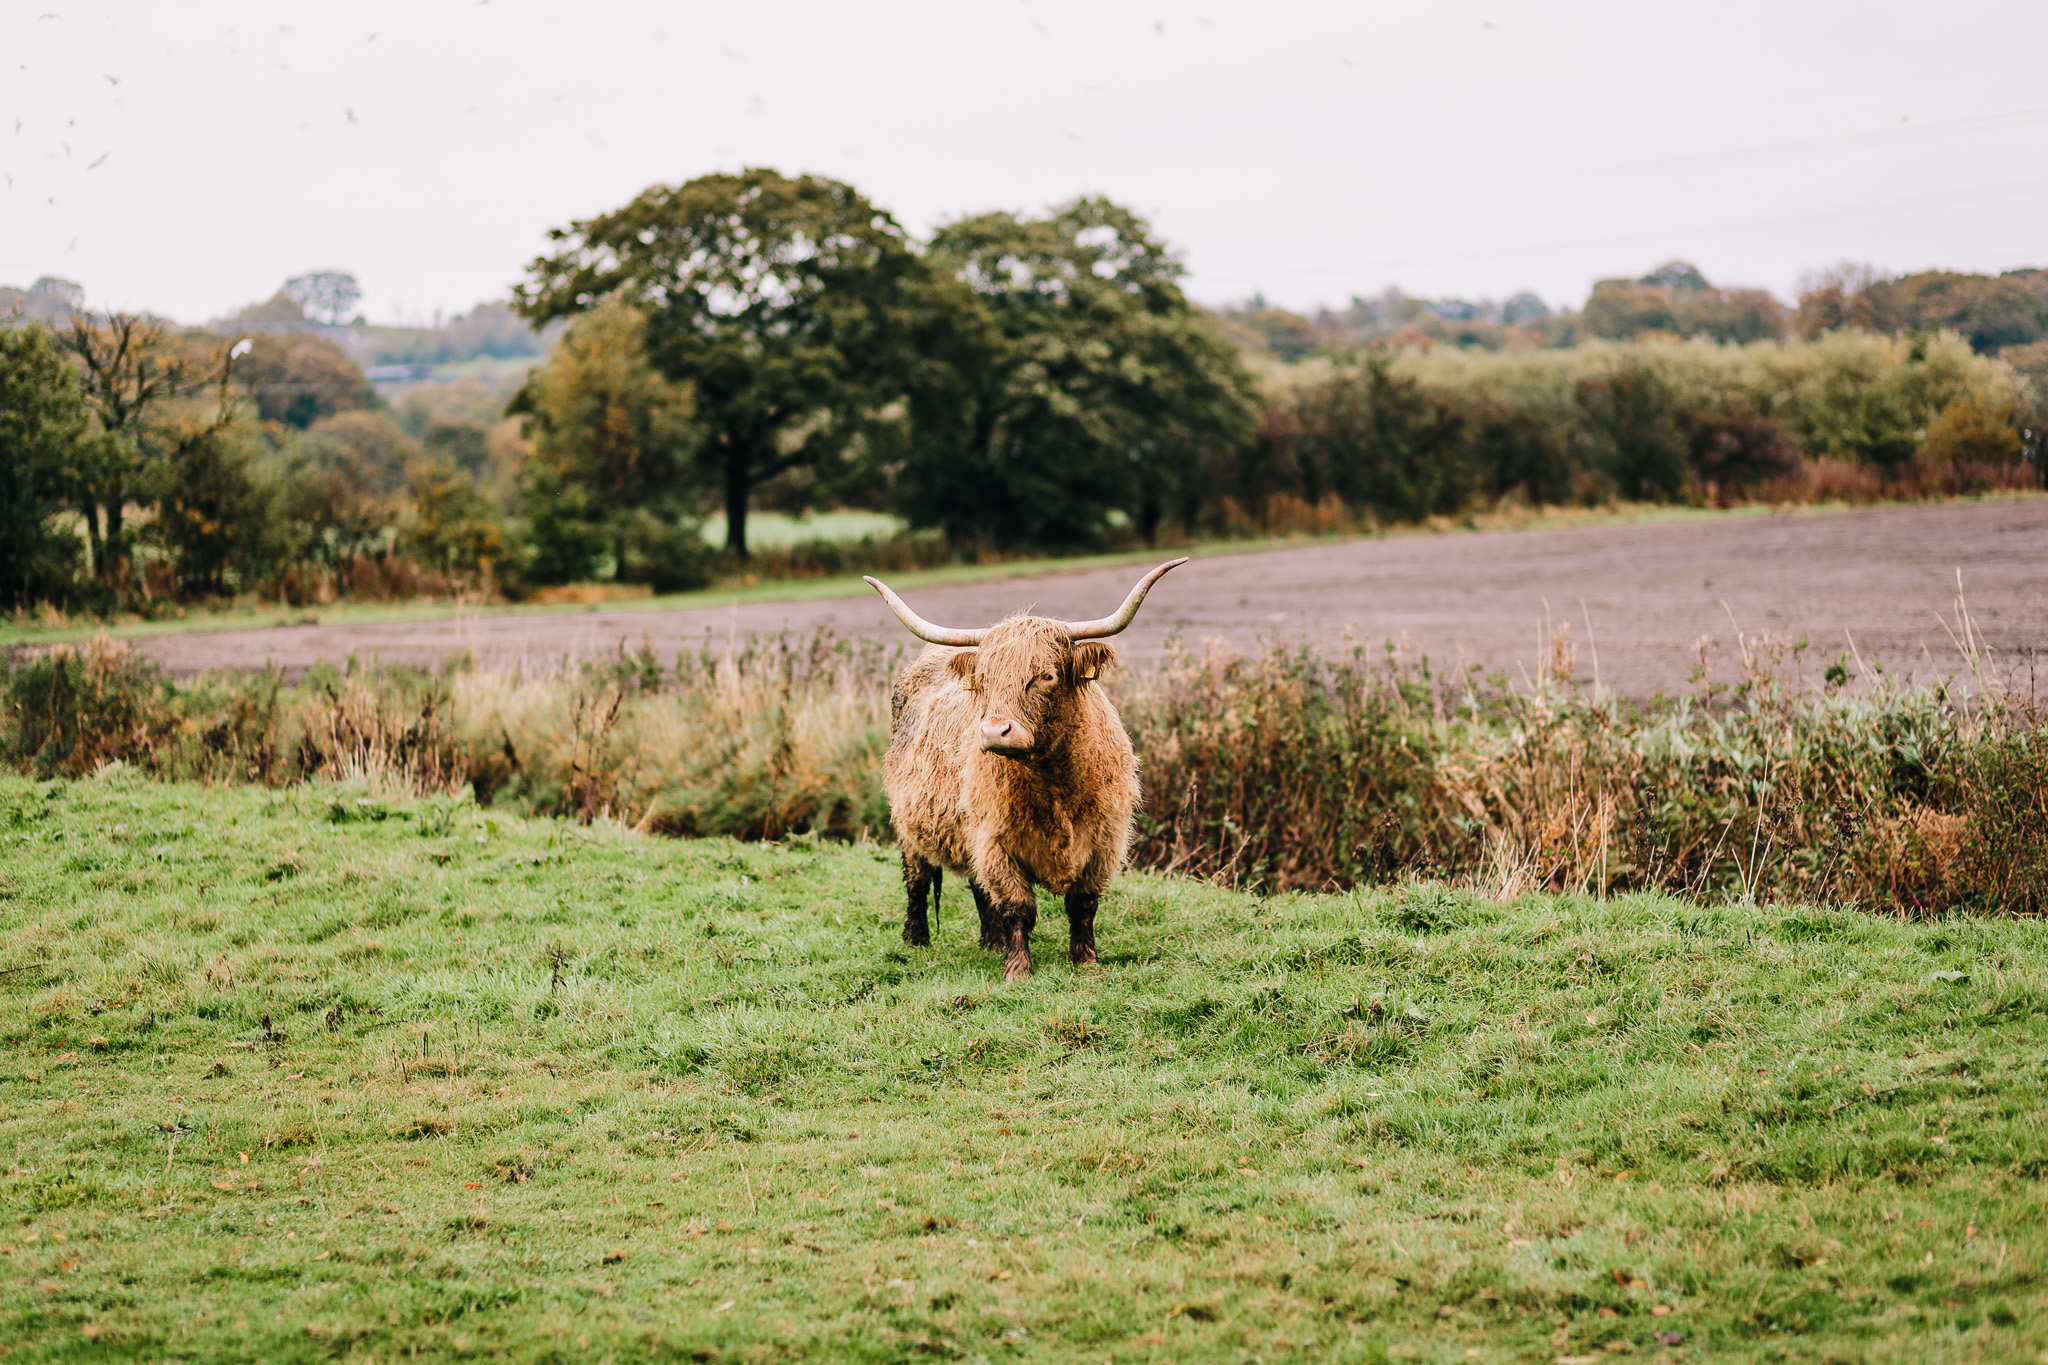 HIGHLAND COW IN FIELD AT THE ASHES WEDDING BARN